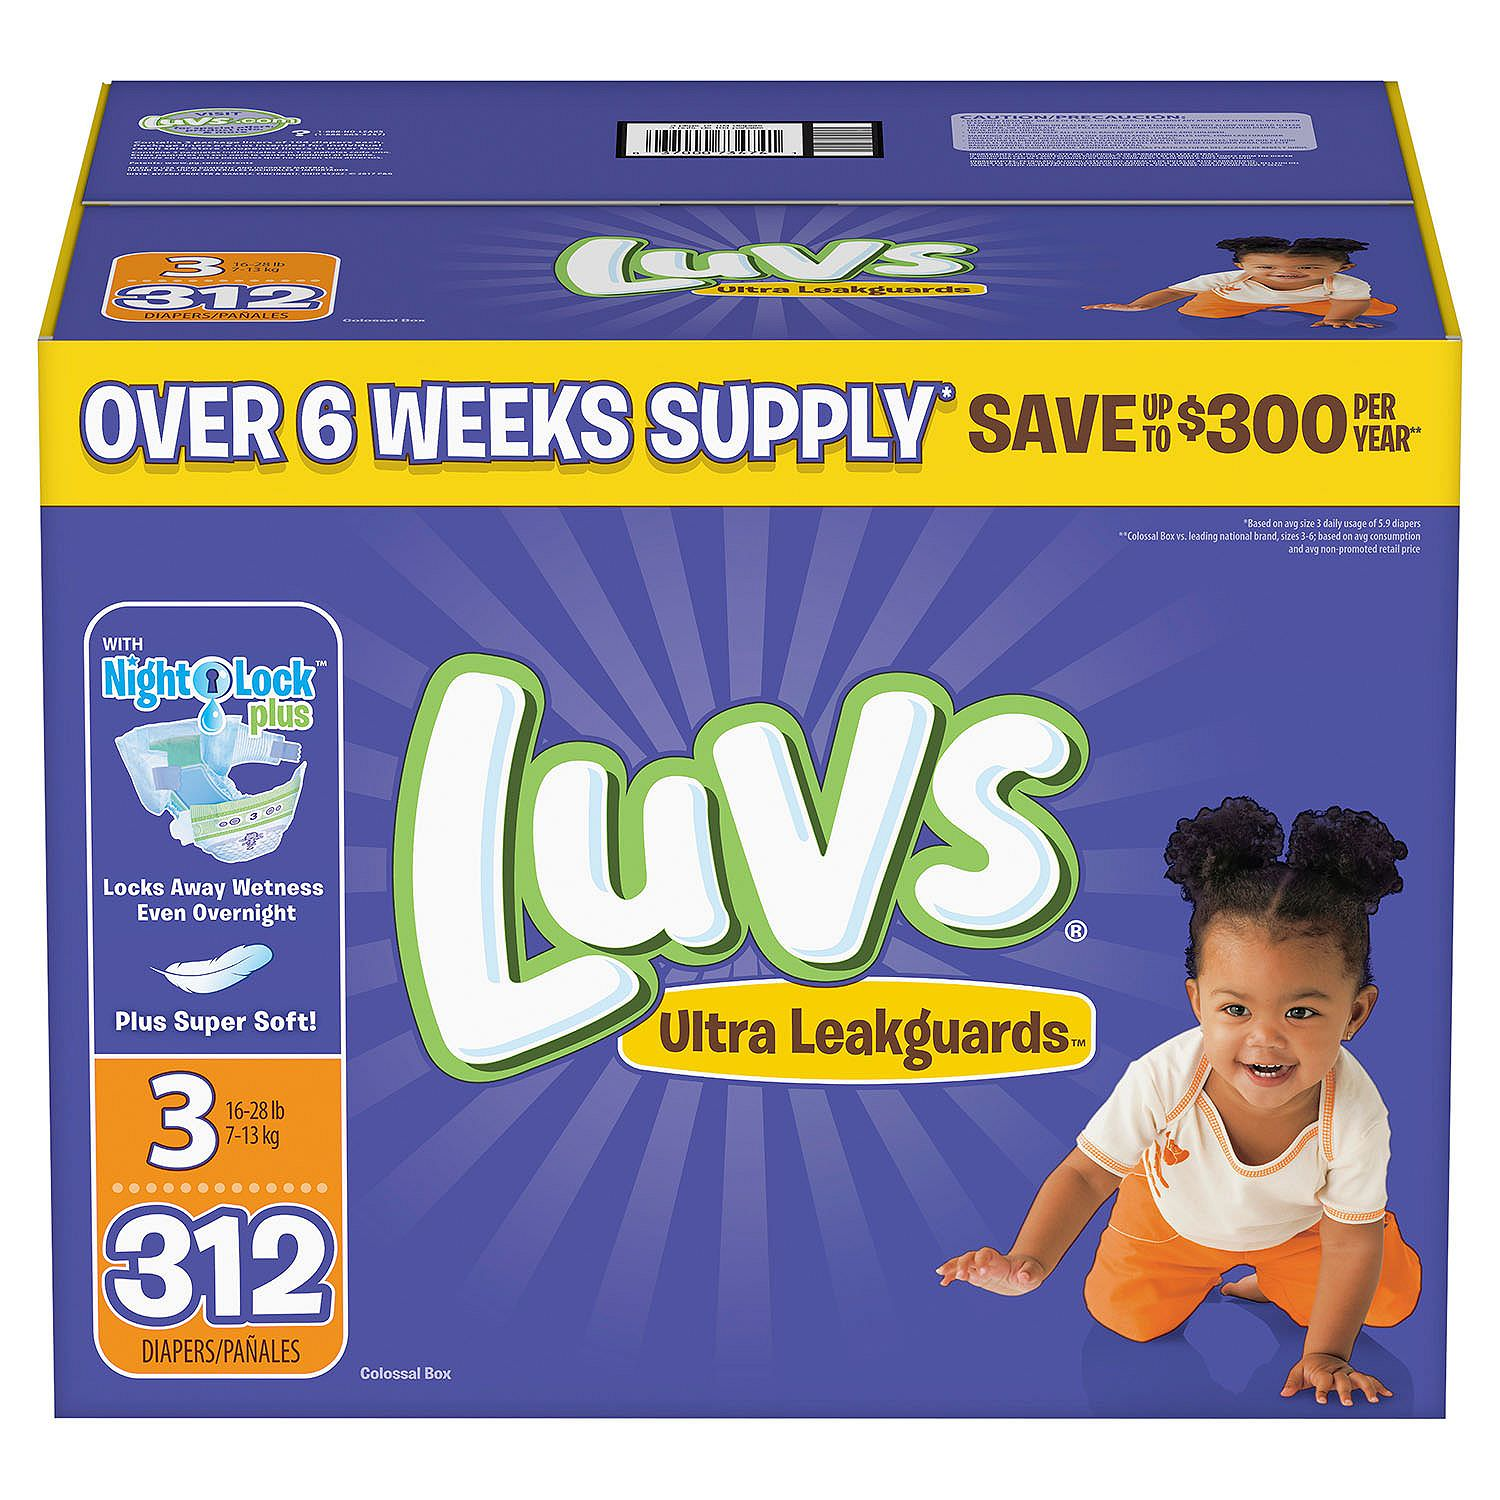 Luvs Ultra Leakguards Diaper Size 3 312 ct. Economy Pack by Unbranded